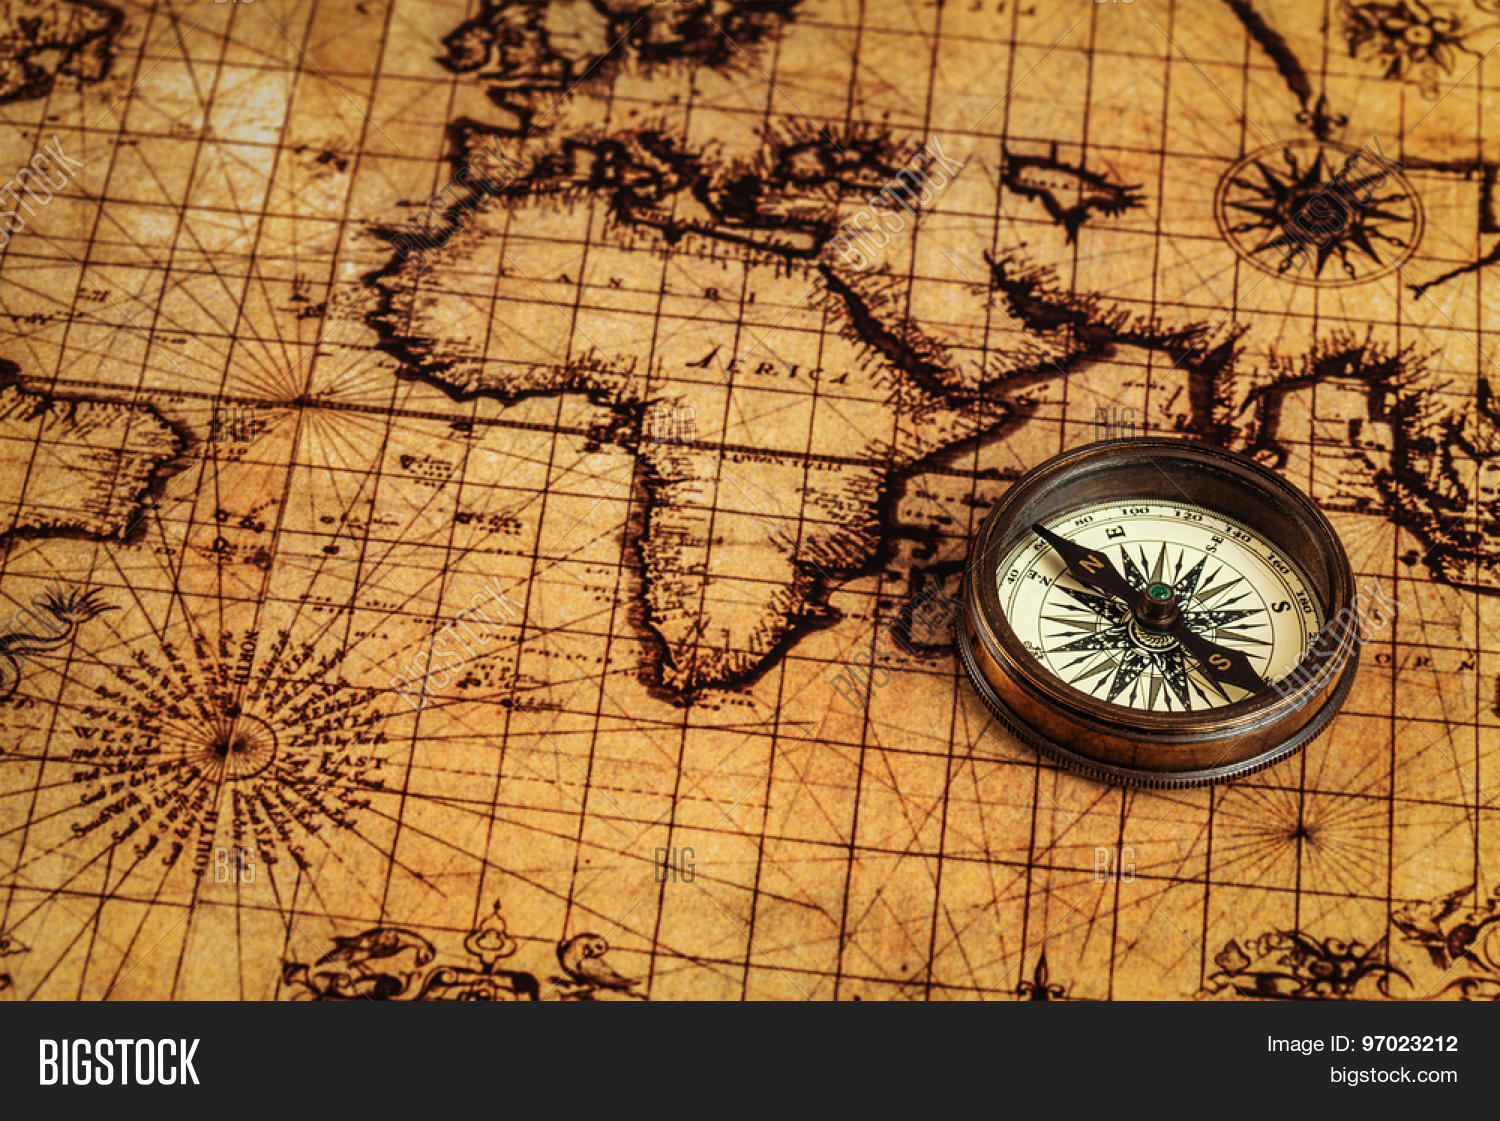 Travel geography image photo free trial bigstock travel geography navigation concept background old vintage retro compass on ancient world map gumiabroncs Gallery